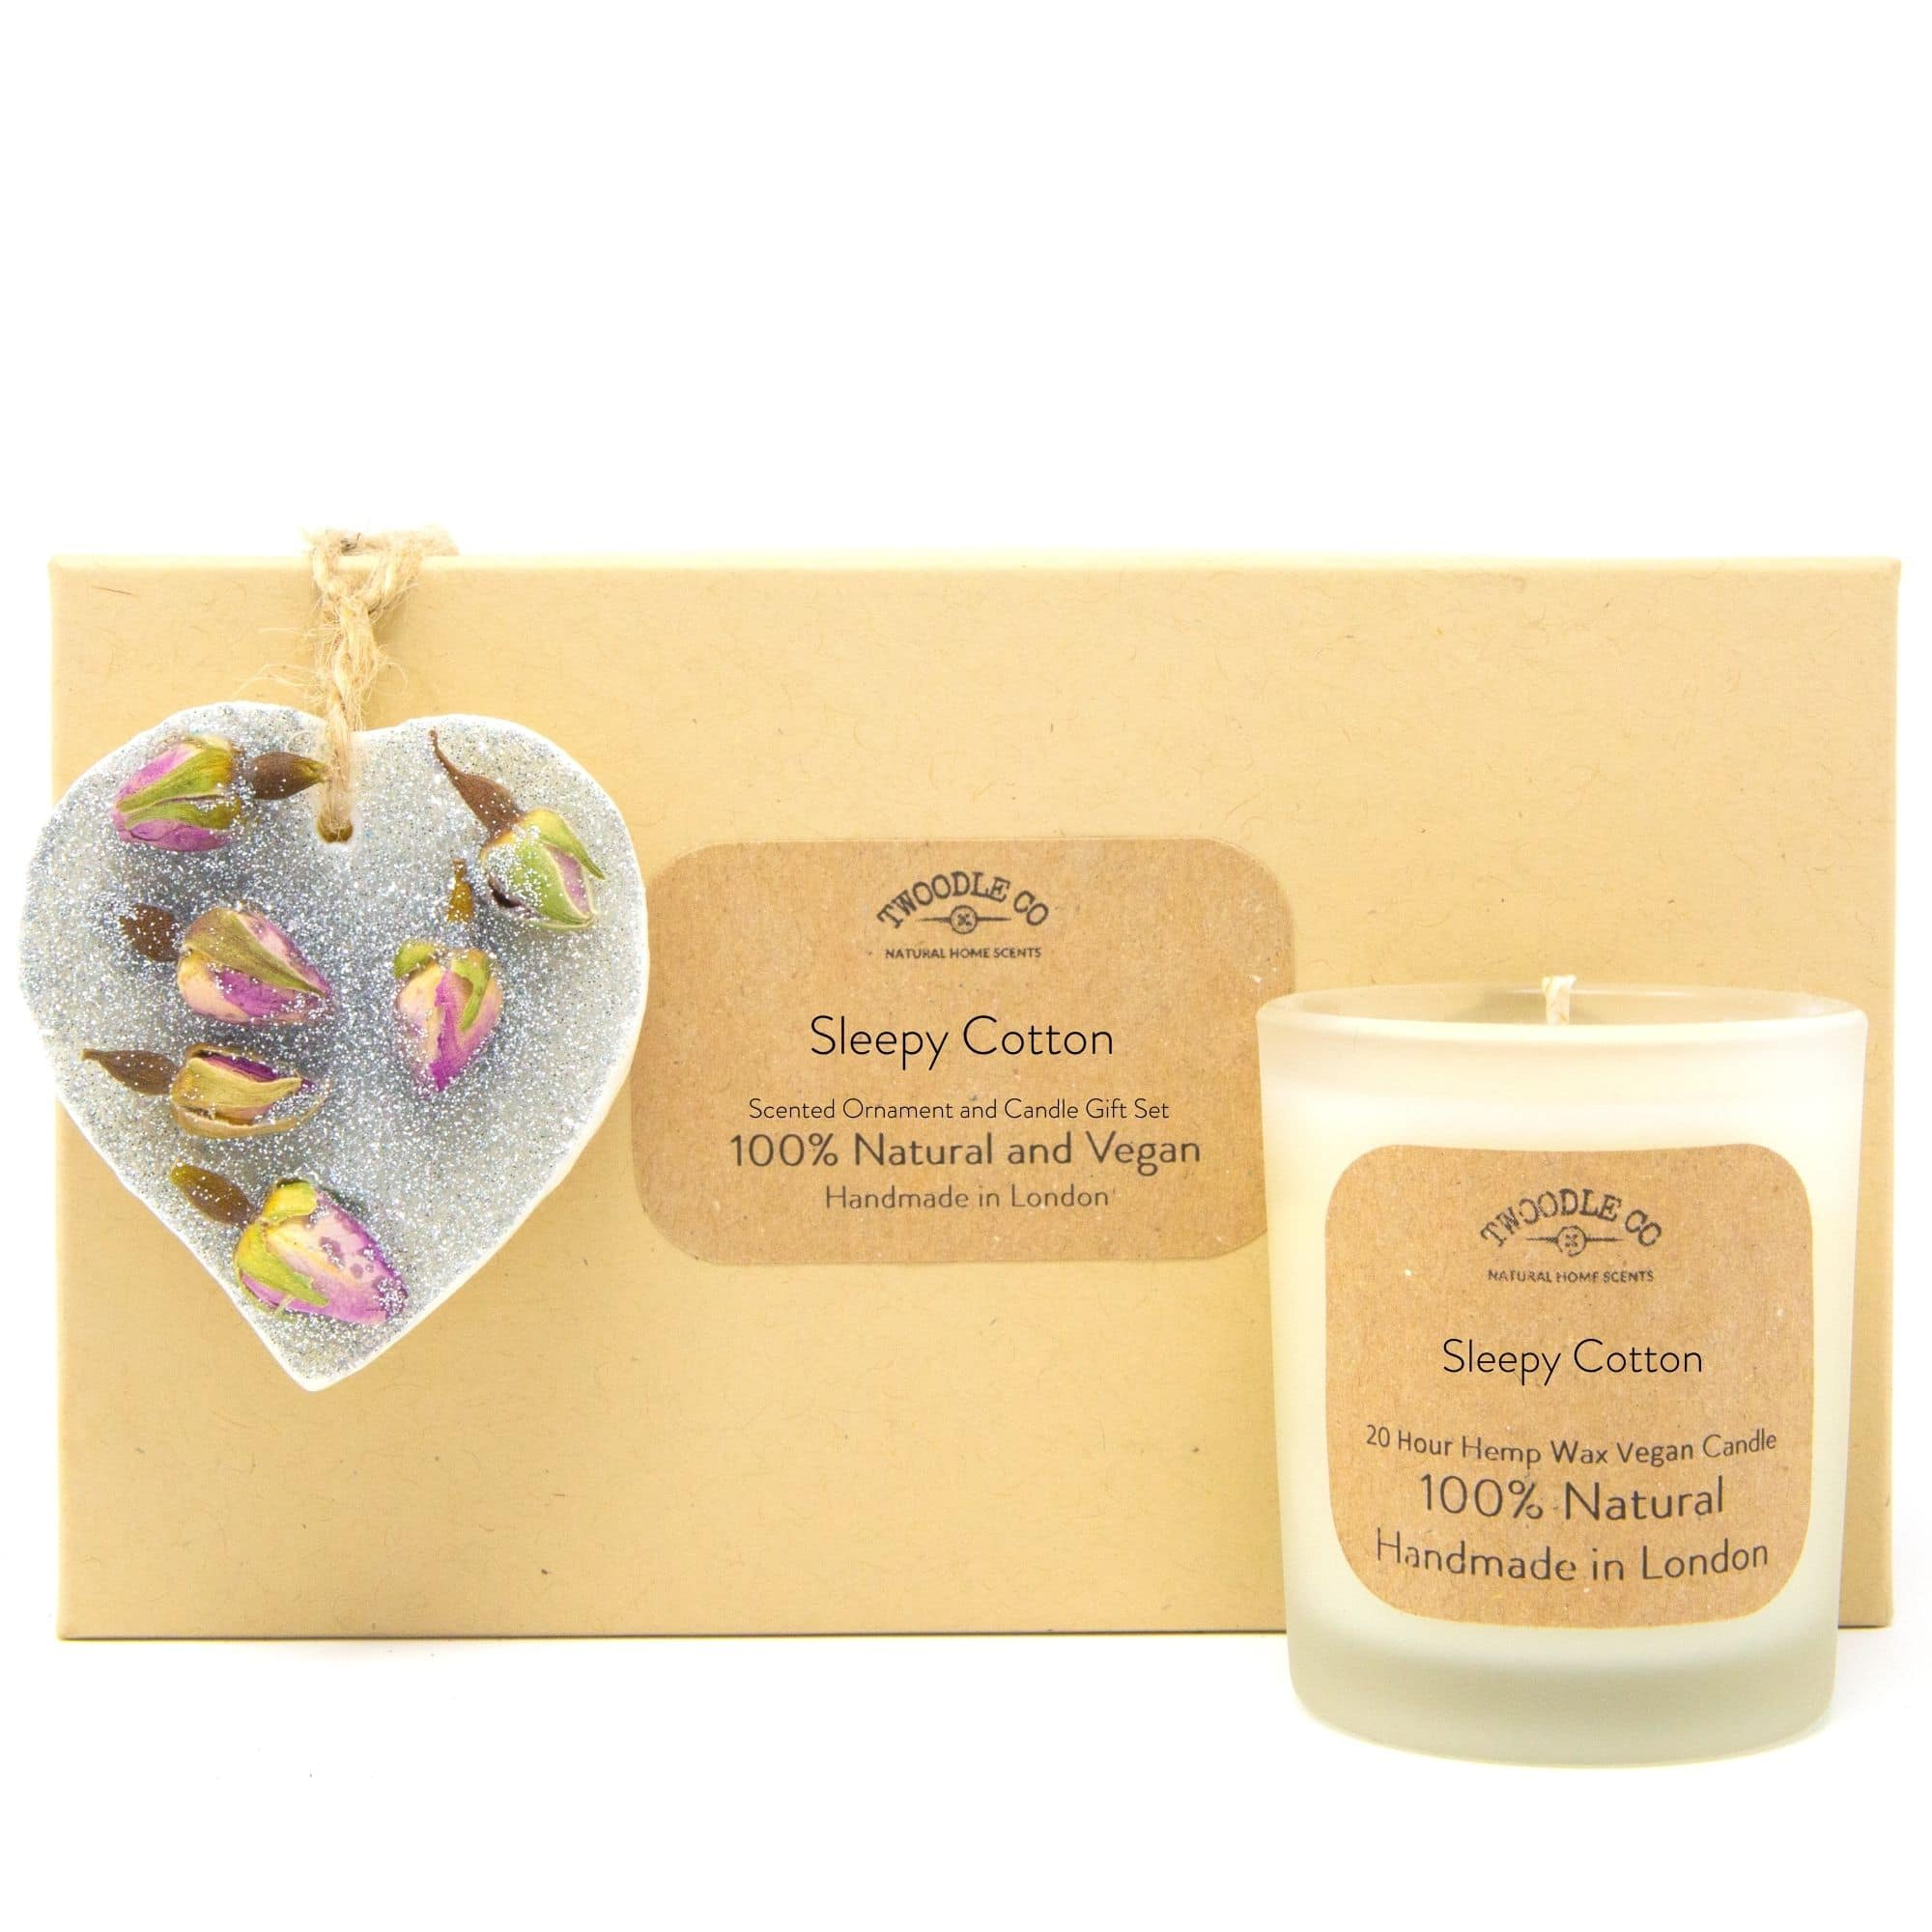 Sleepy Cotton | Scented Ornament and Candle Gift Set